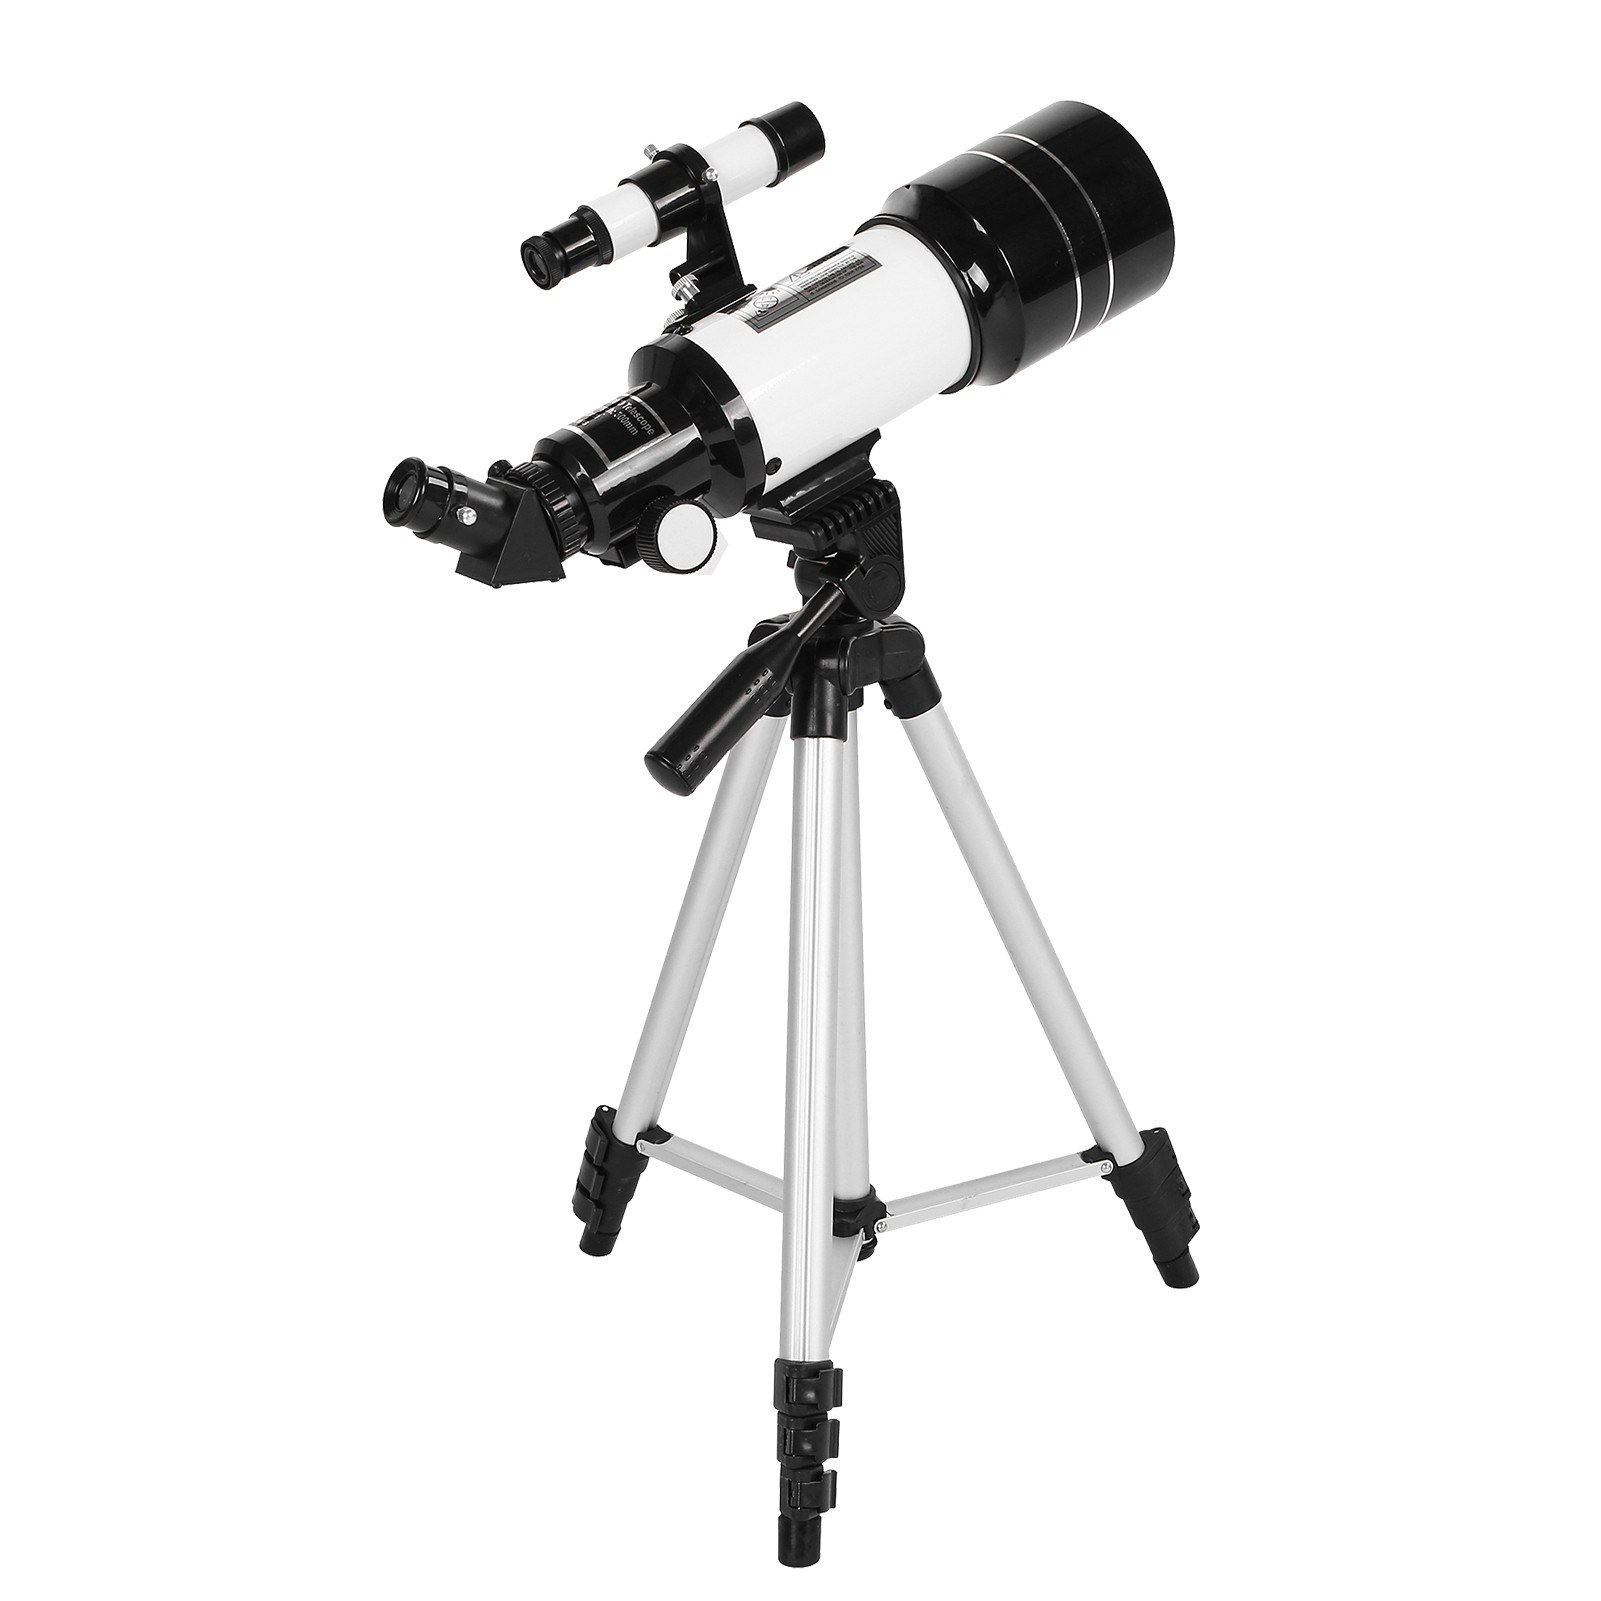 tomtop.com - 34% OFF 70mm Astronomical Telescope 150X High Power Monocular Telescope, Limited Offers $85.99